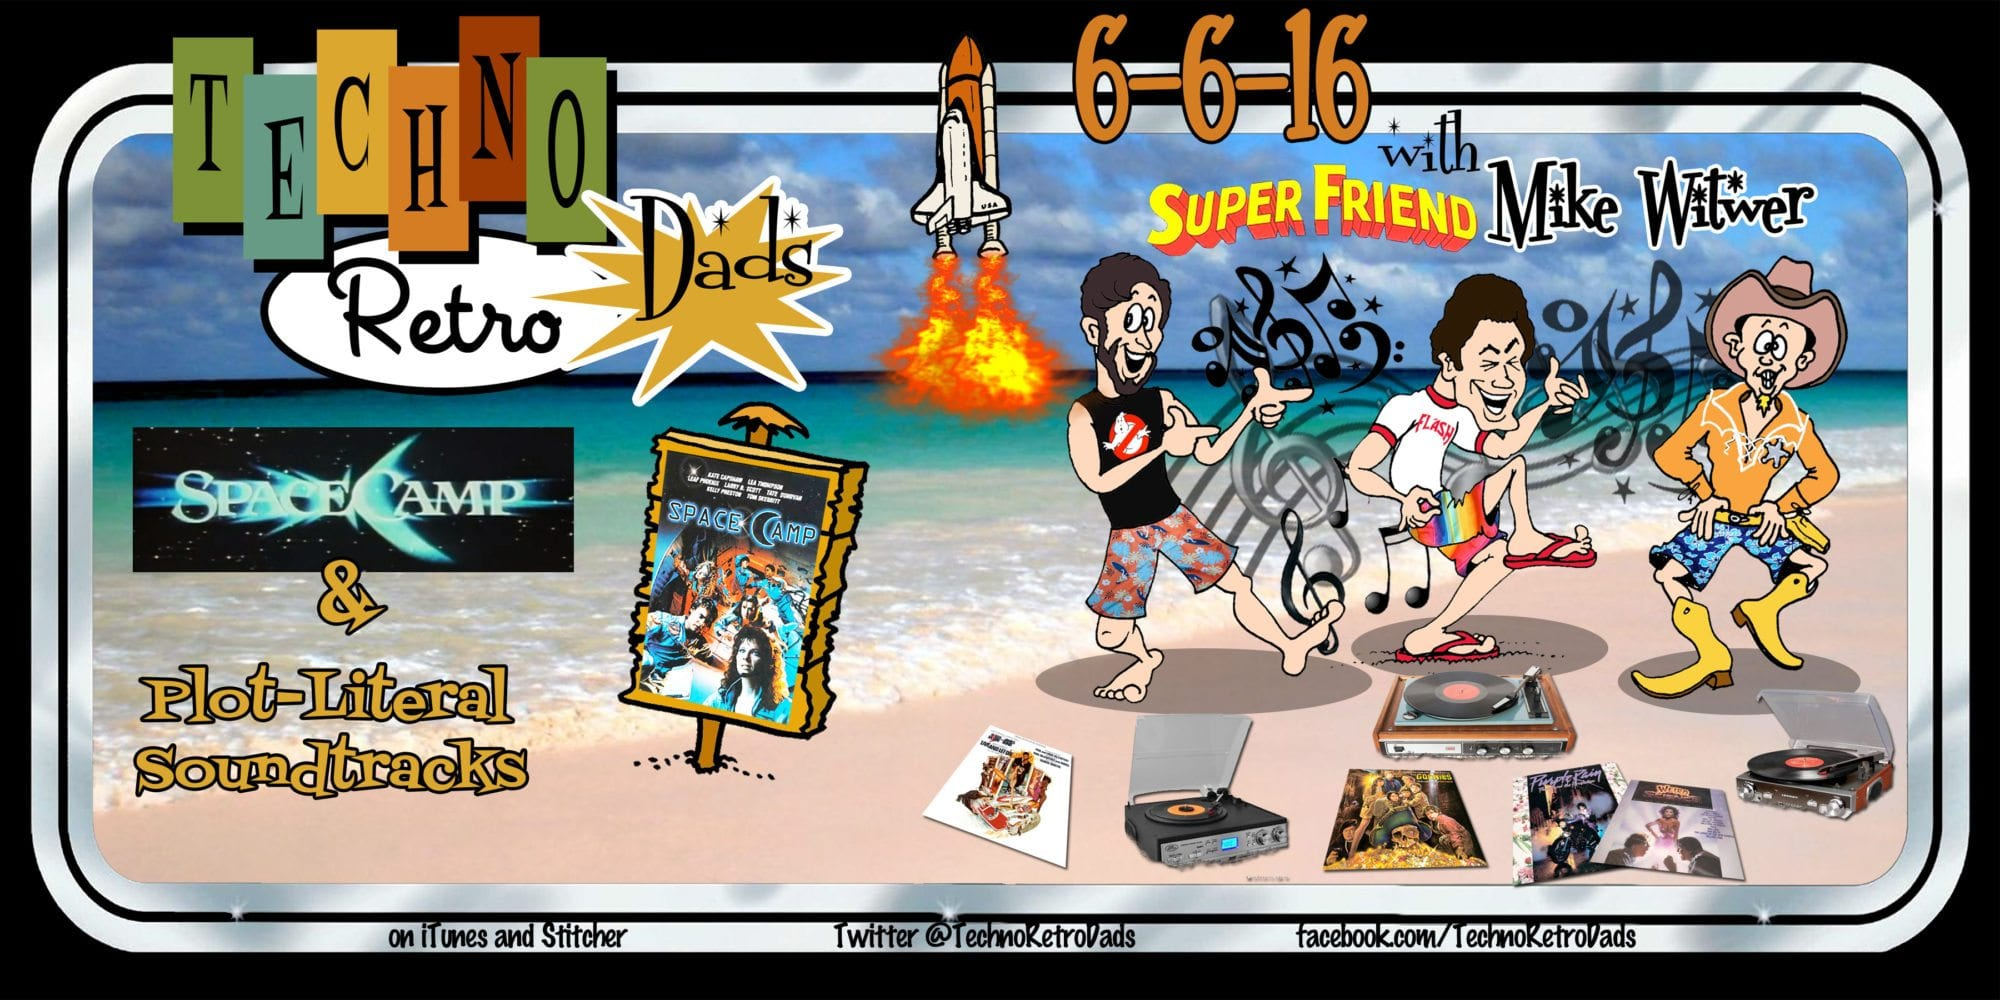 TechnoRetro Dads with Michael Witwer and rockin' movie soundtracks